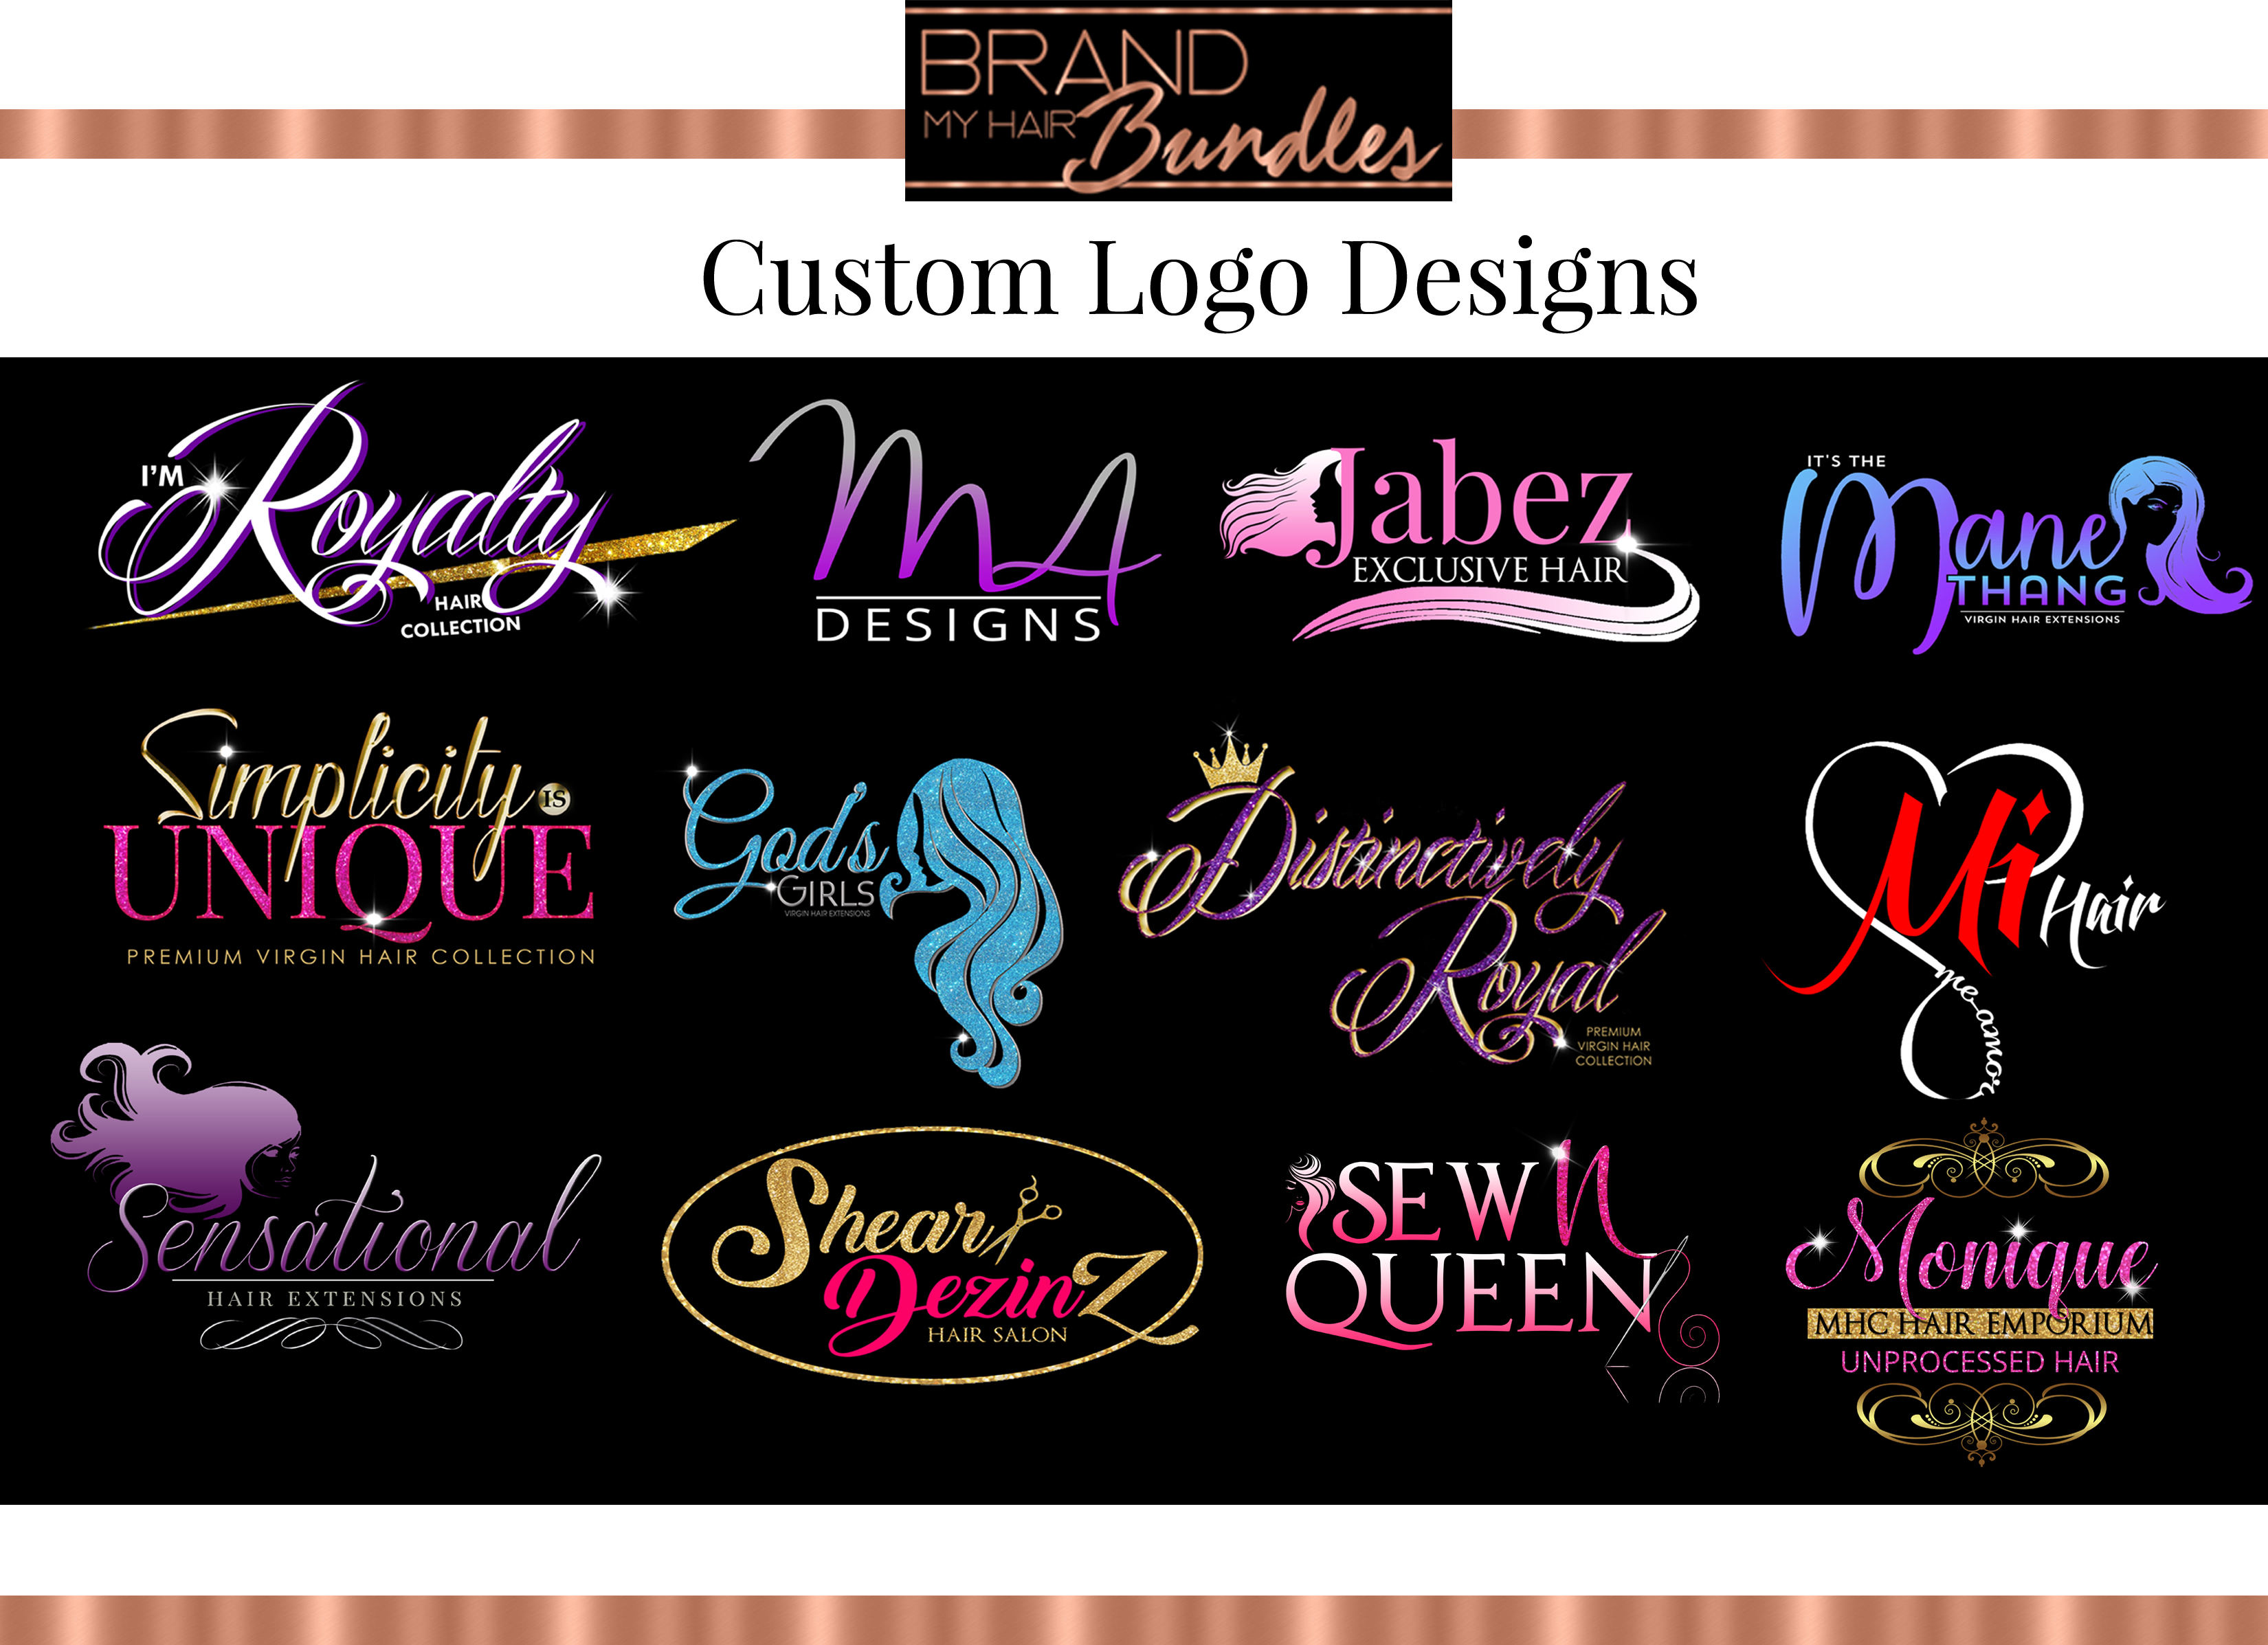 Brand My Hair Bundles Custom Logo